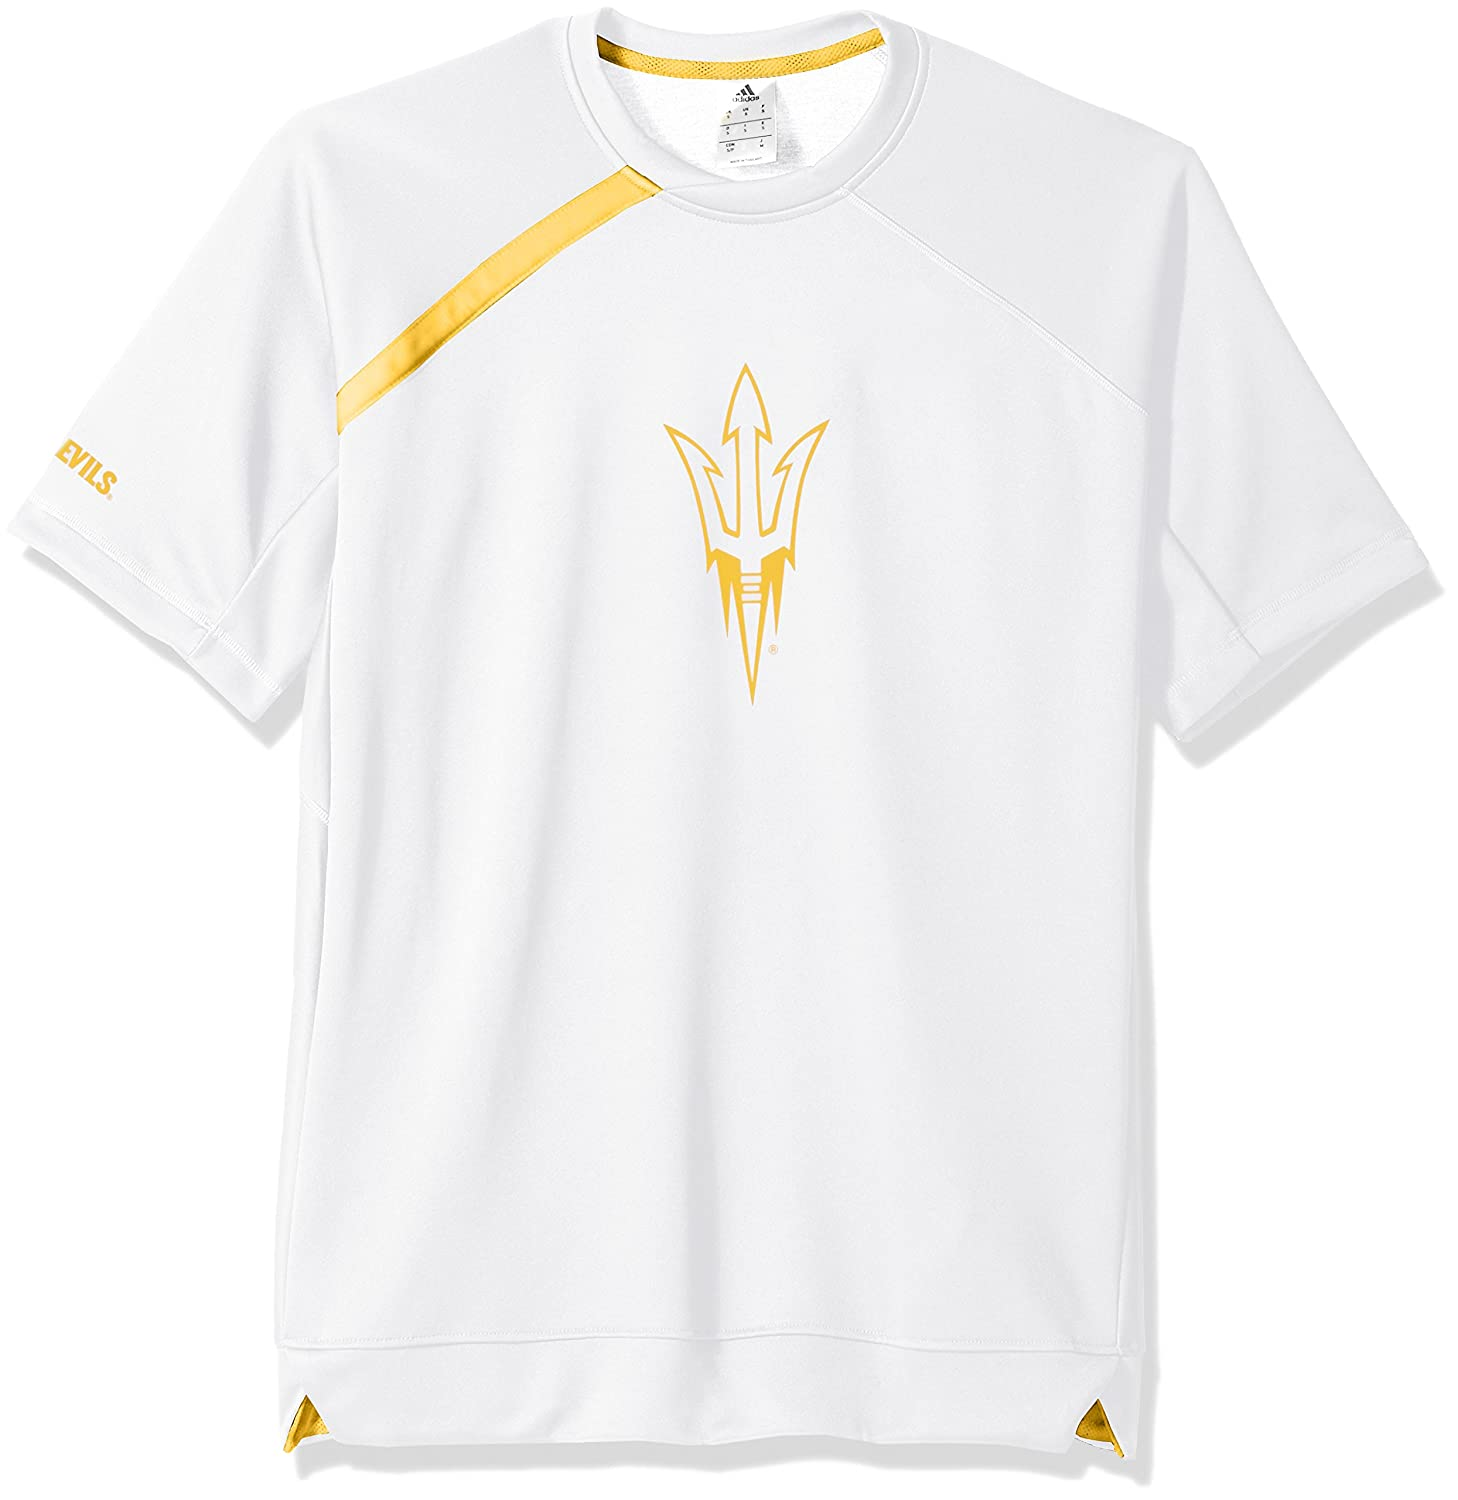 NCAA Arizona State Sun Devilsメンズon Court S/Shooting shirton Court S/シューティングシャツ、ホワイト、スモール B075375Q26